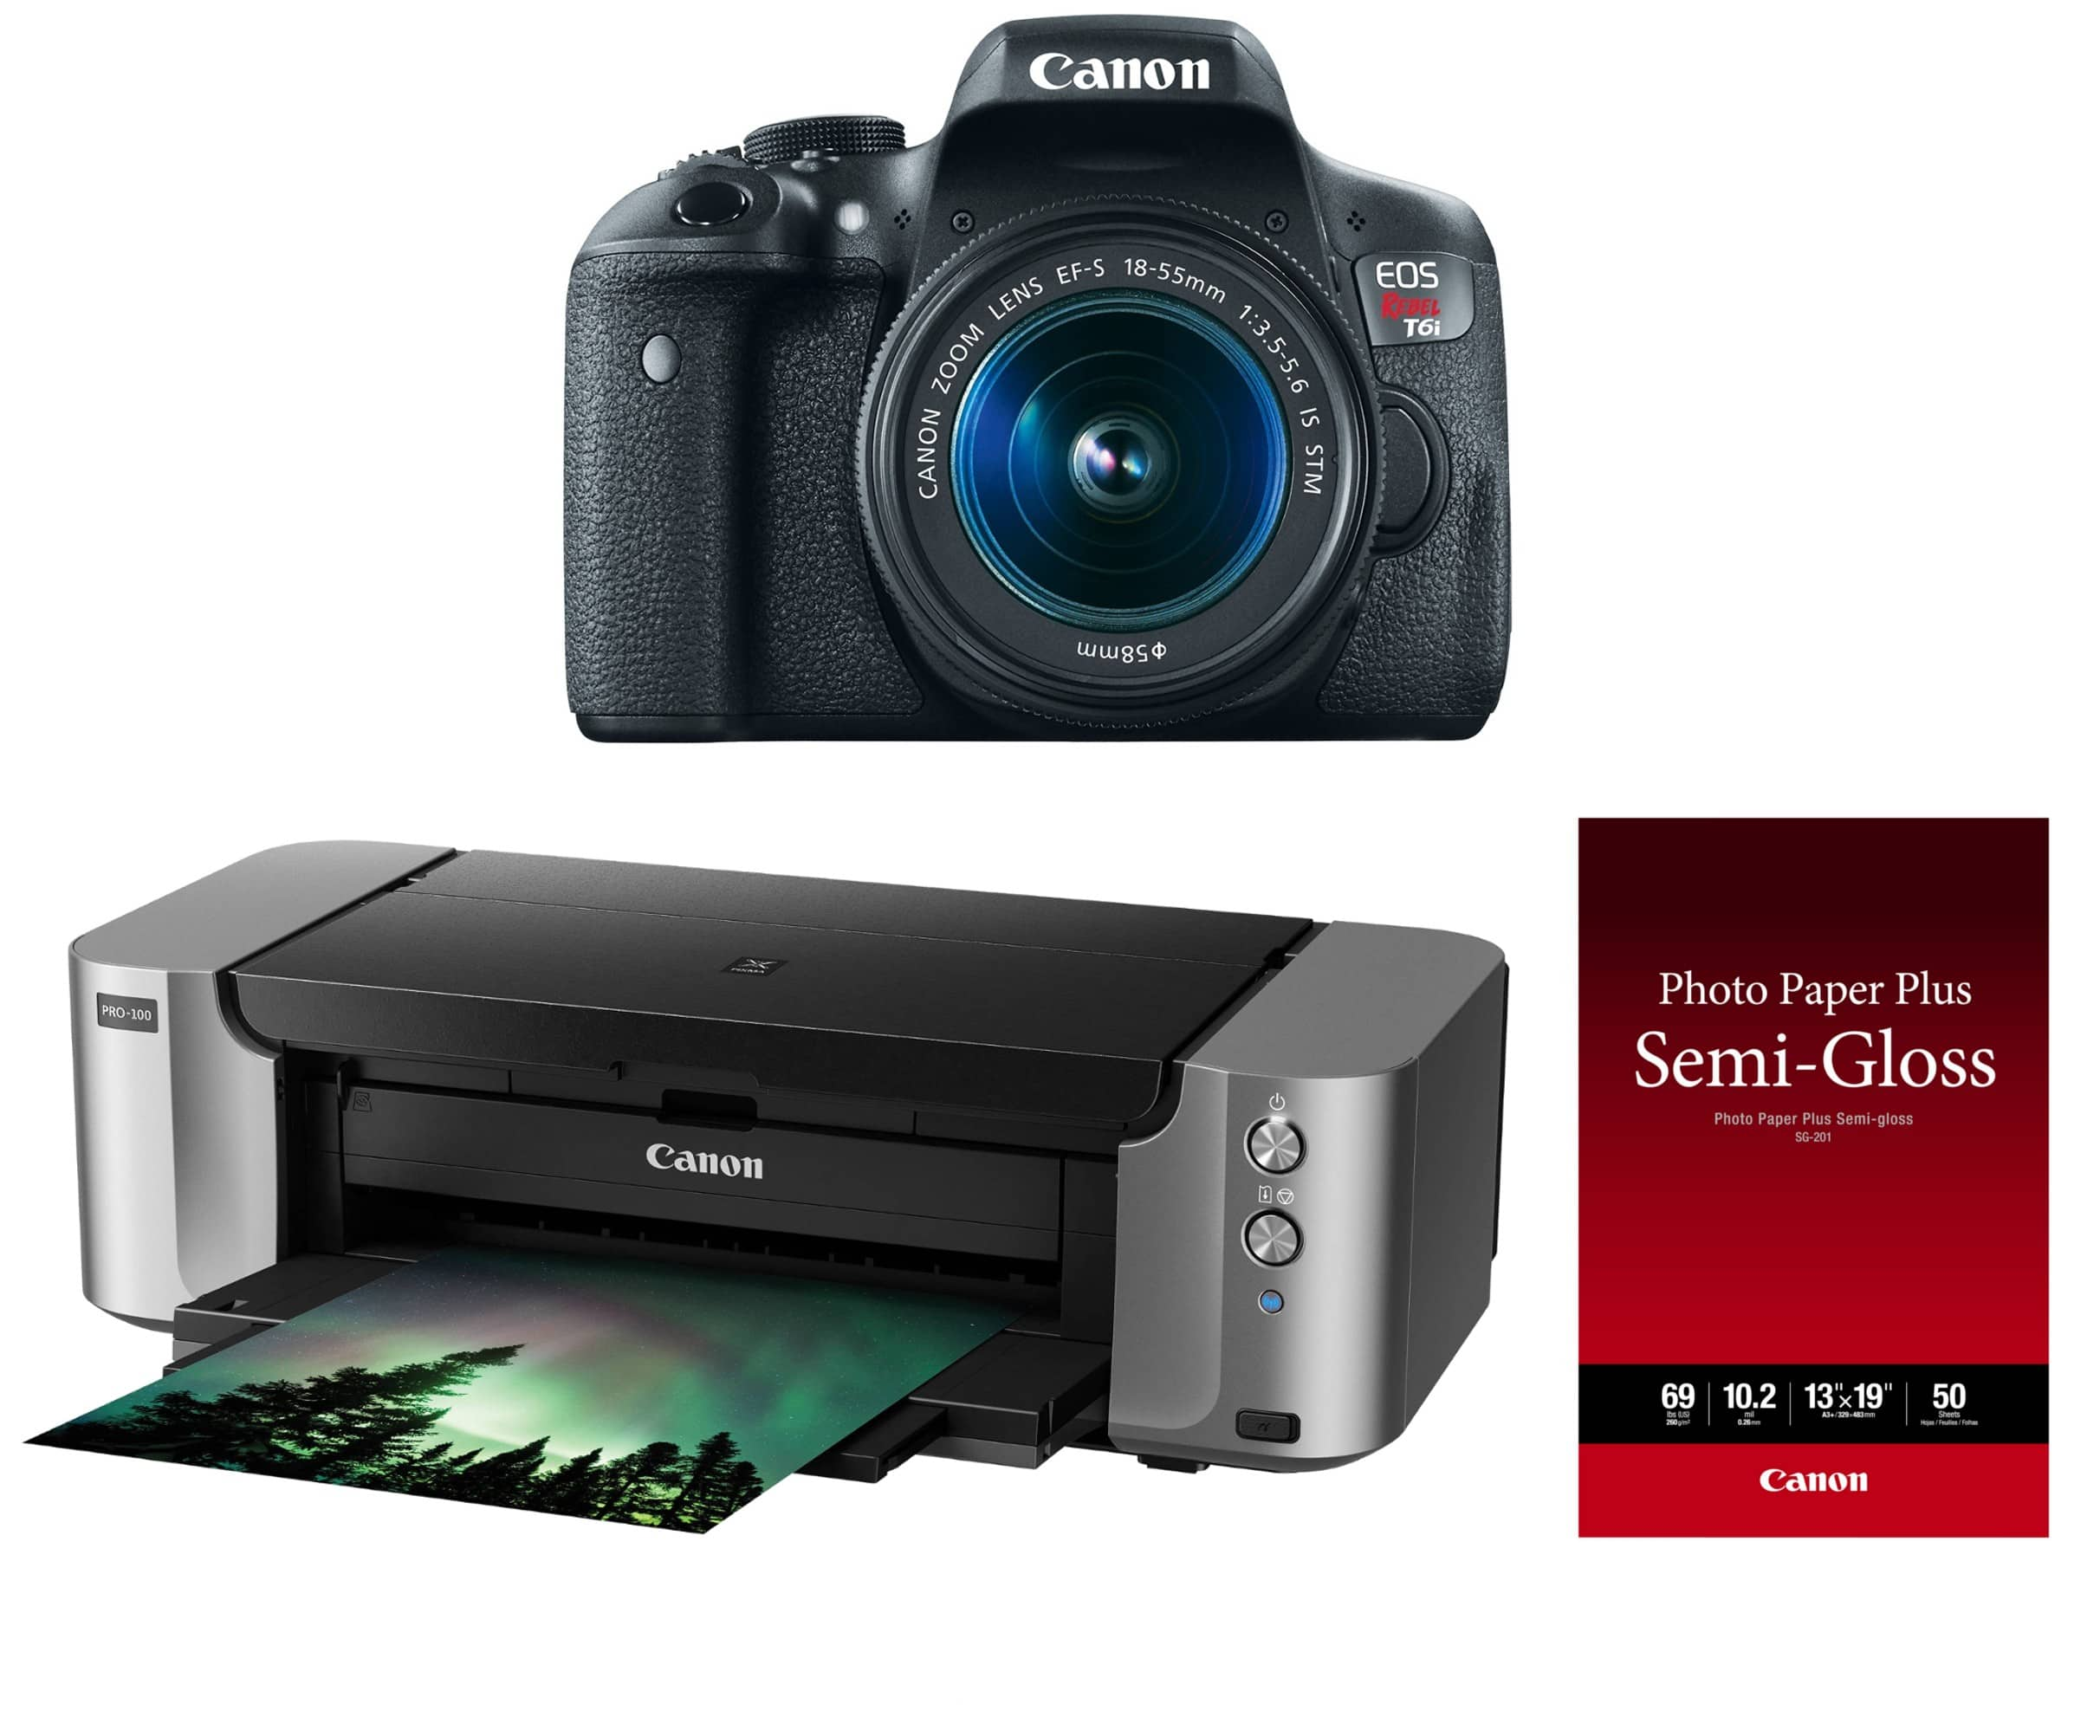 Canon T6i w/ 18-55mm IS STM Lens + Pixma PRO Printer + Paper $469 AR, Canon SL2 DSLR With EF-S 18-55mm F/4-5.6 Lens And Pixma PRO-100 Kit $449 AR